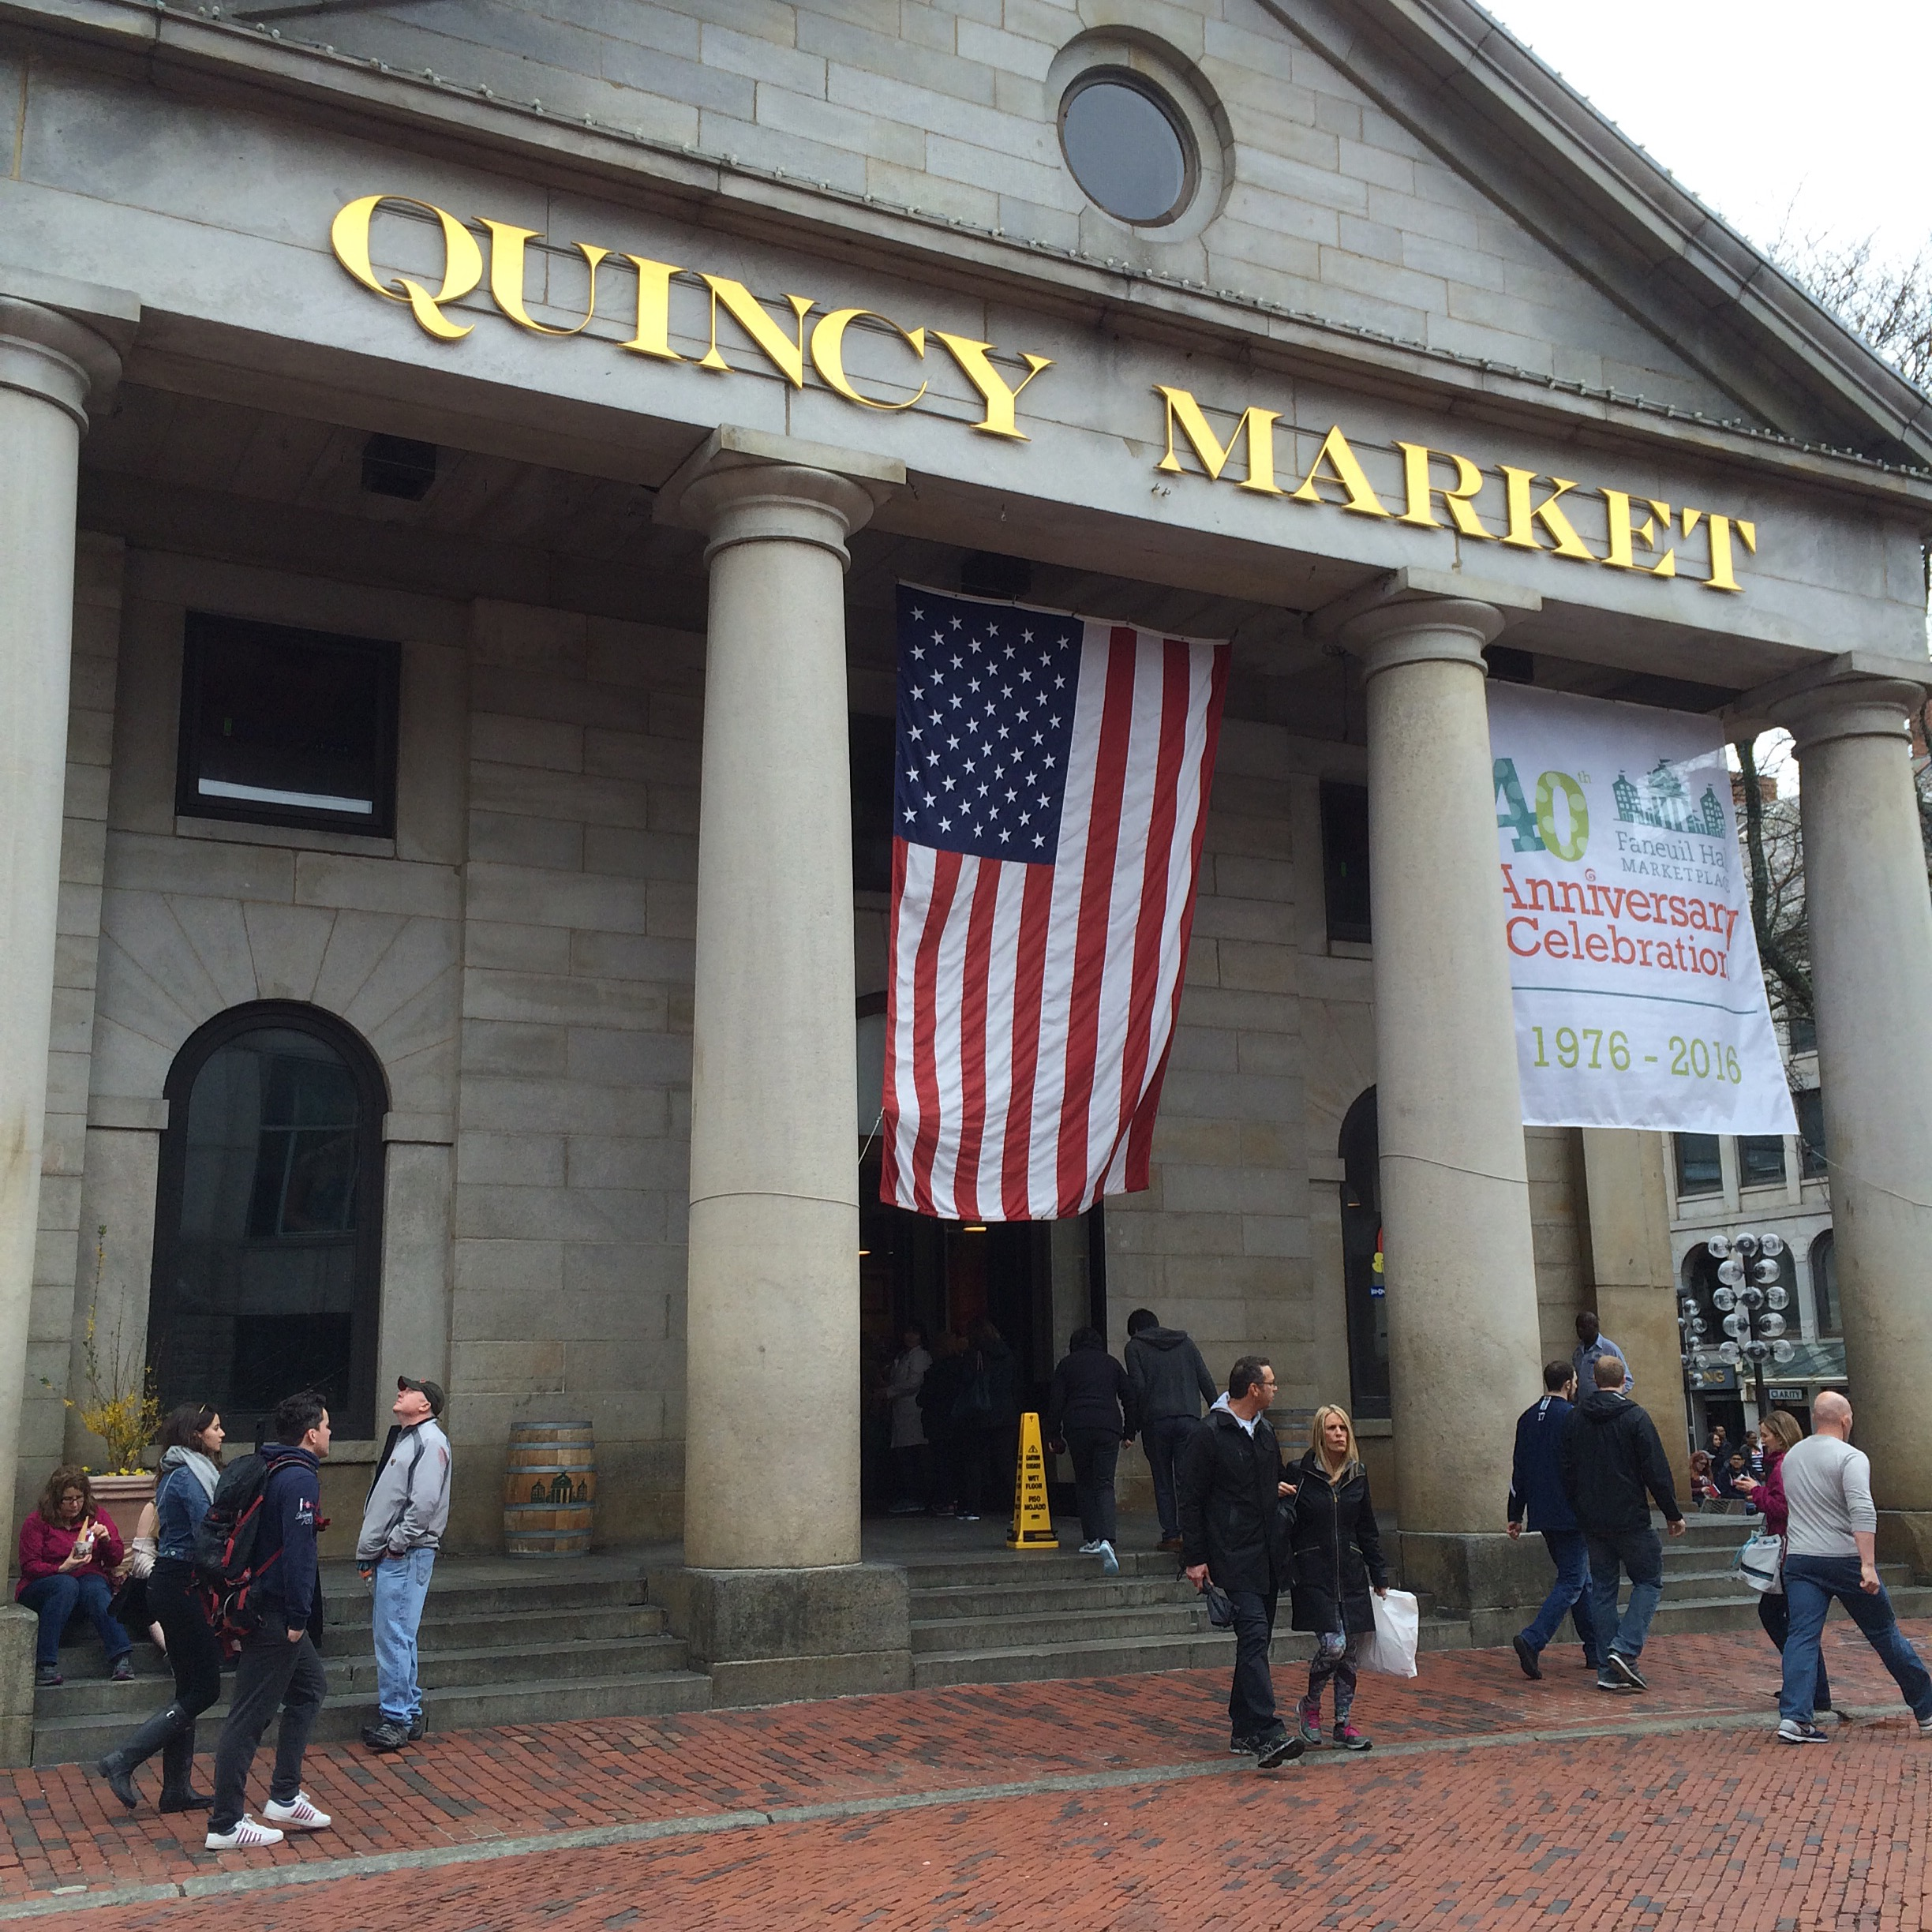 Water taxis, clam chowder, accents oh my – Boston